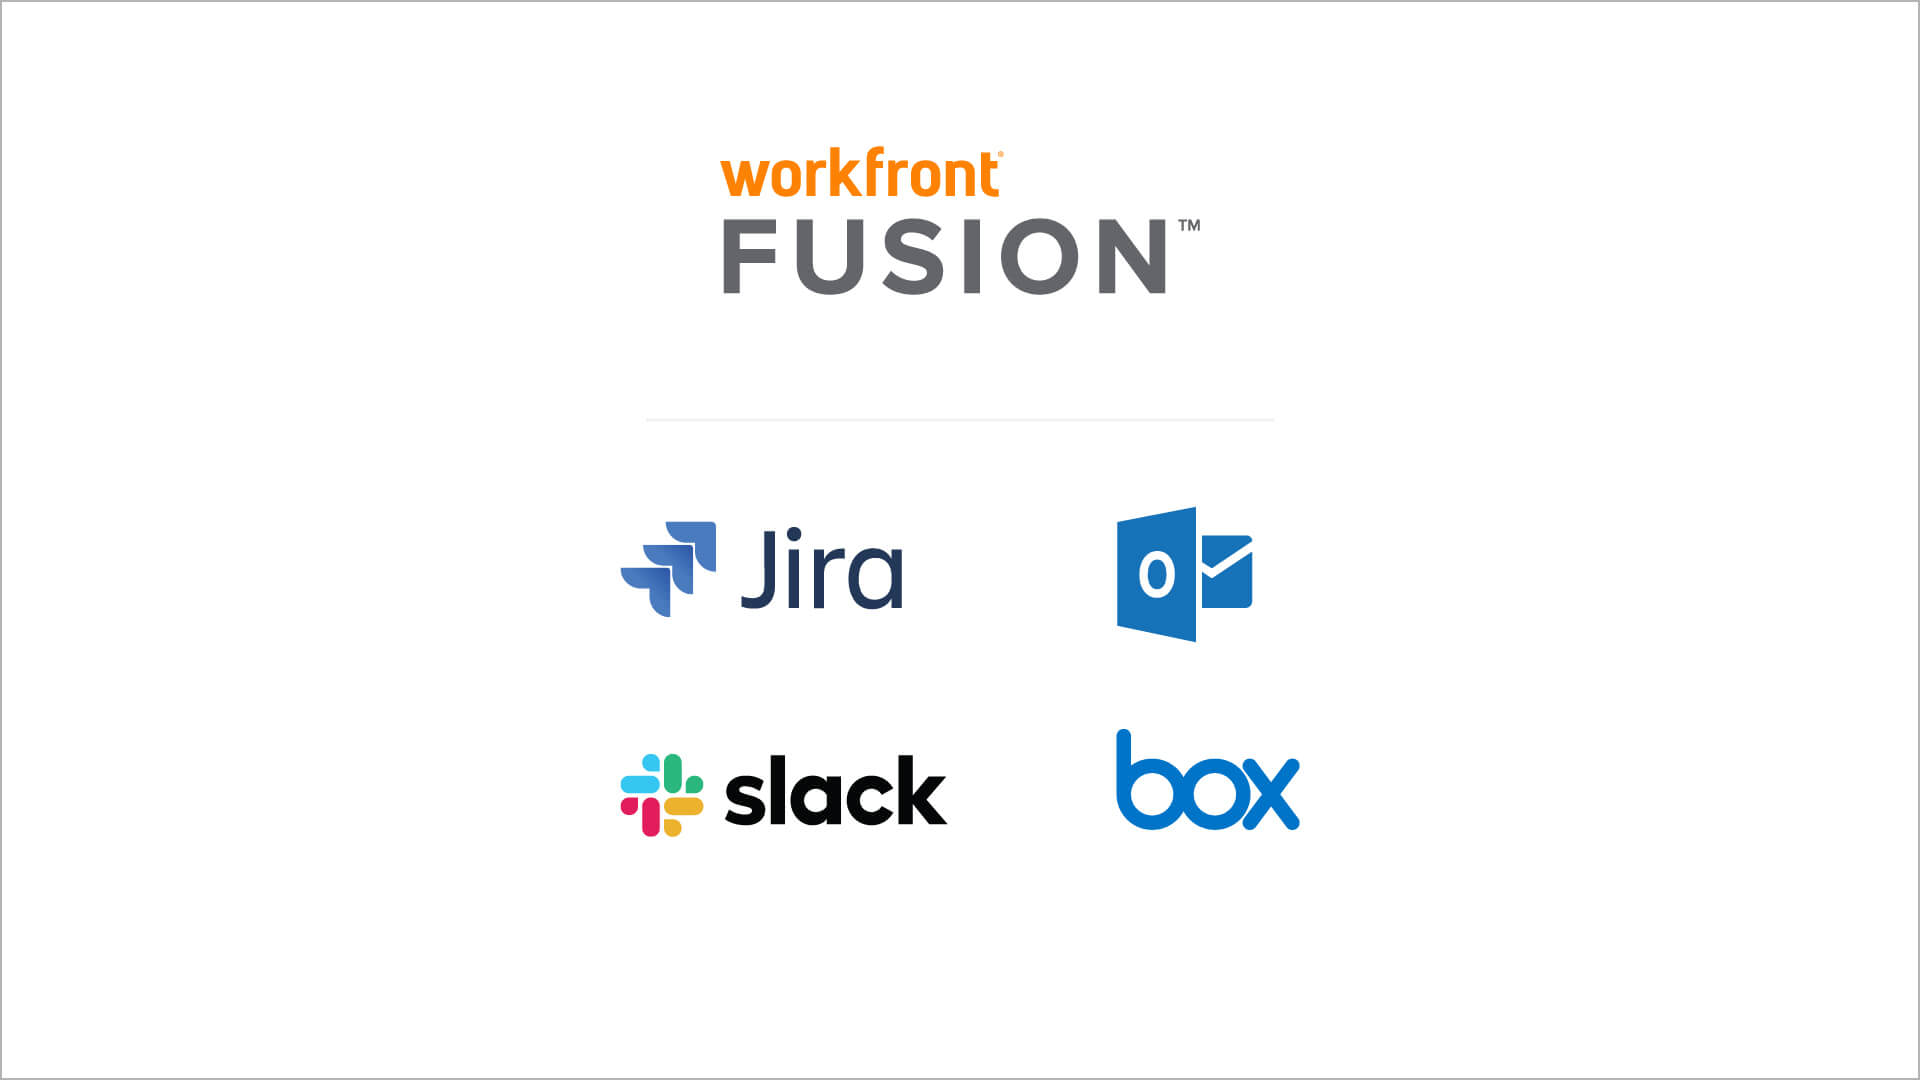 jira, box, slack, outlook integration logos